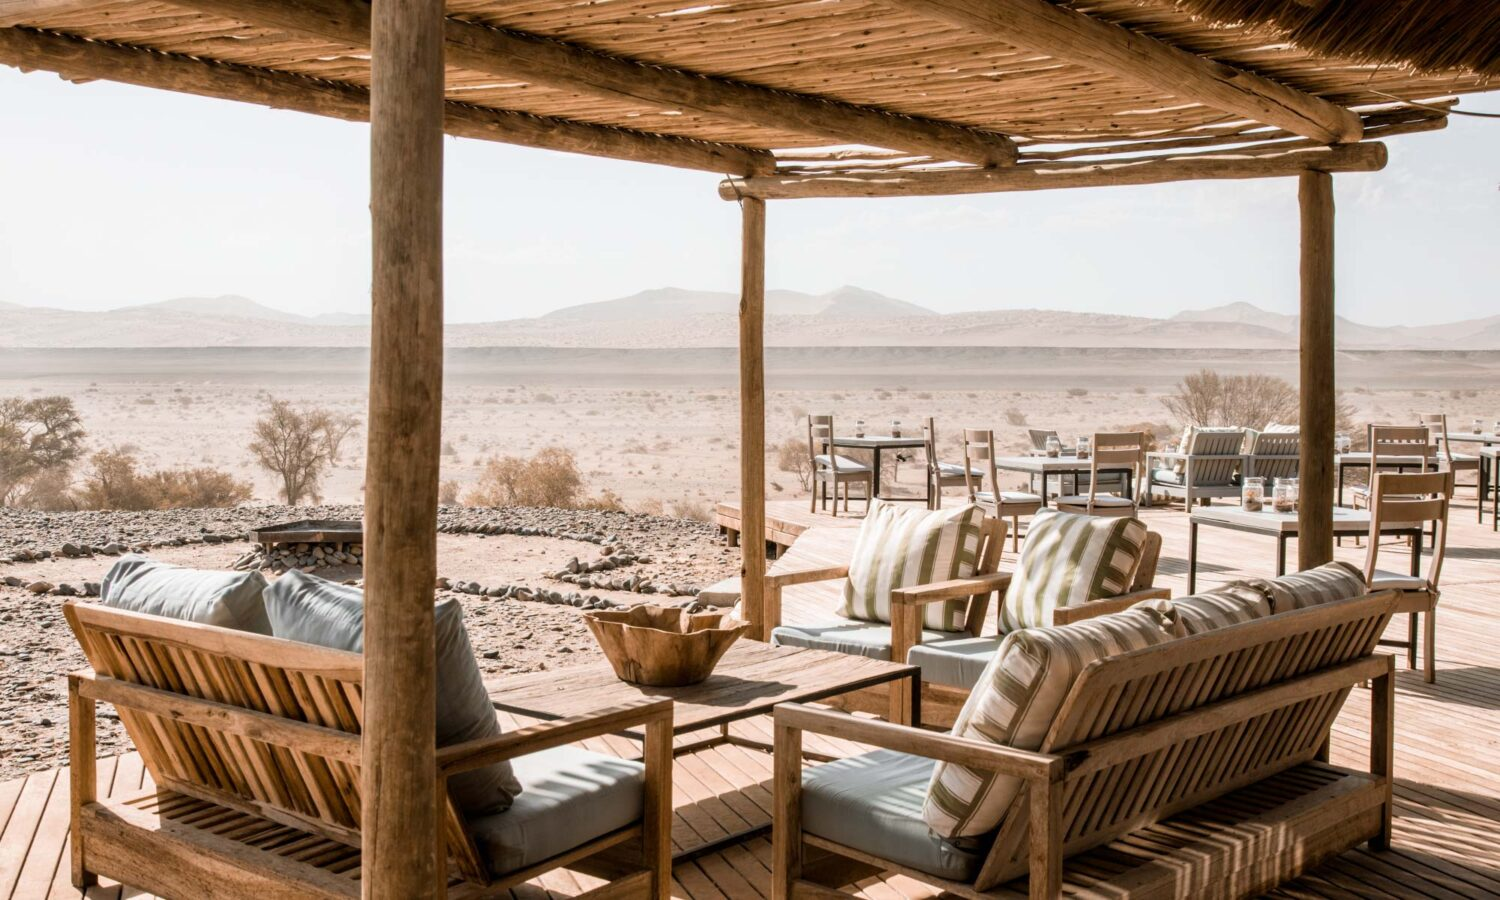 Where to stay in Sossusvlei: experiencing desert immersion at Kulala Desert Lodge